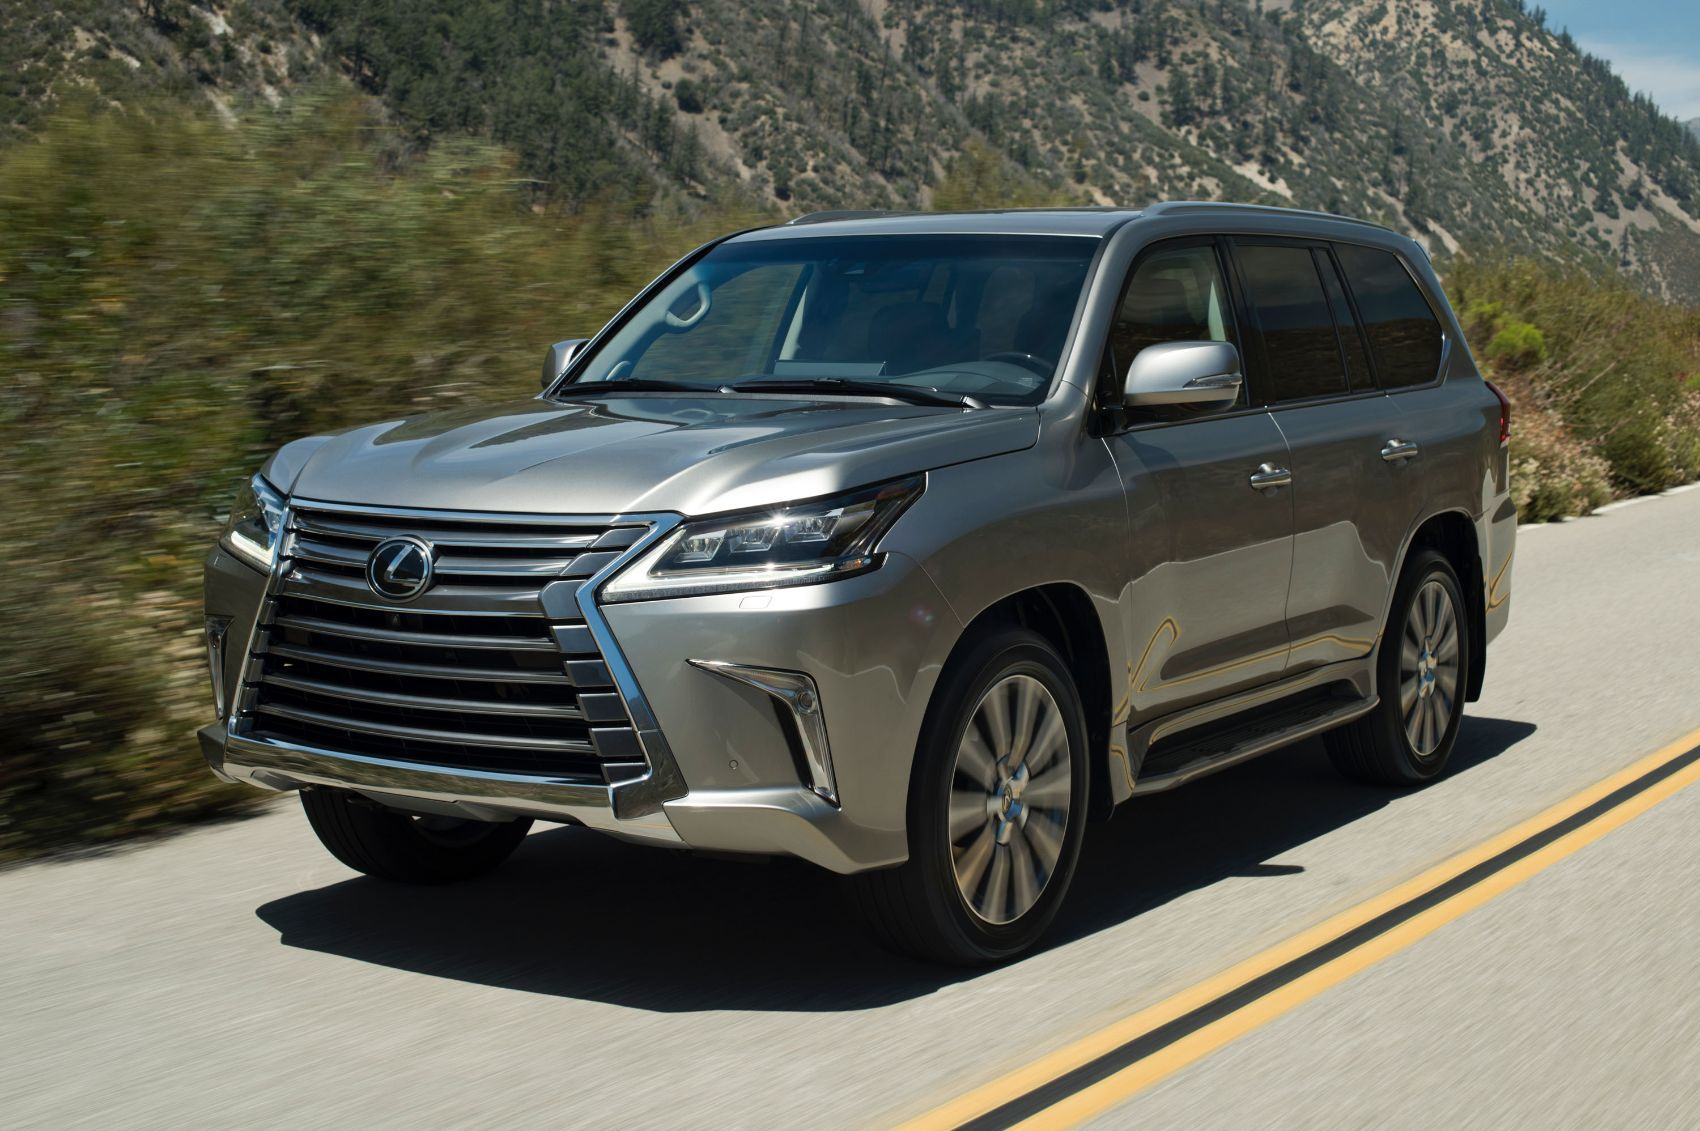 2019 Lexus LX 570 Two-Row Review: Powerful & Luxurious But Thirsty 15